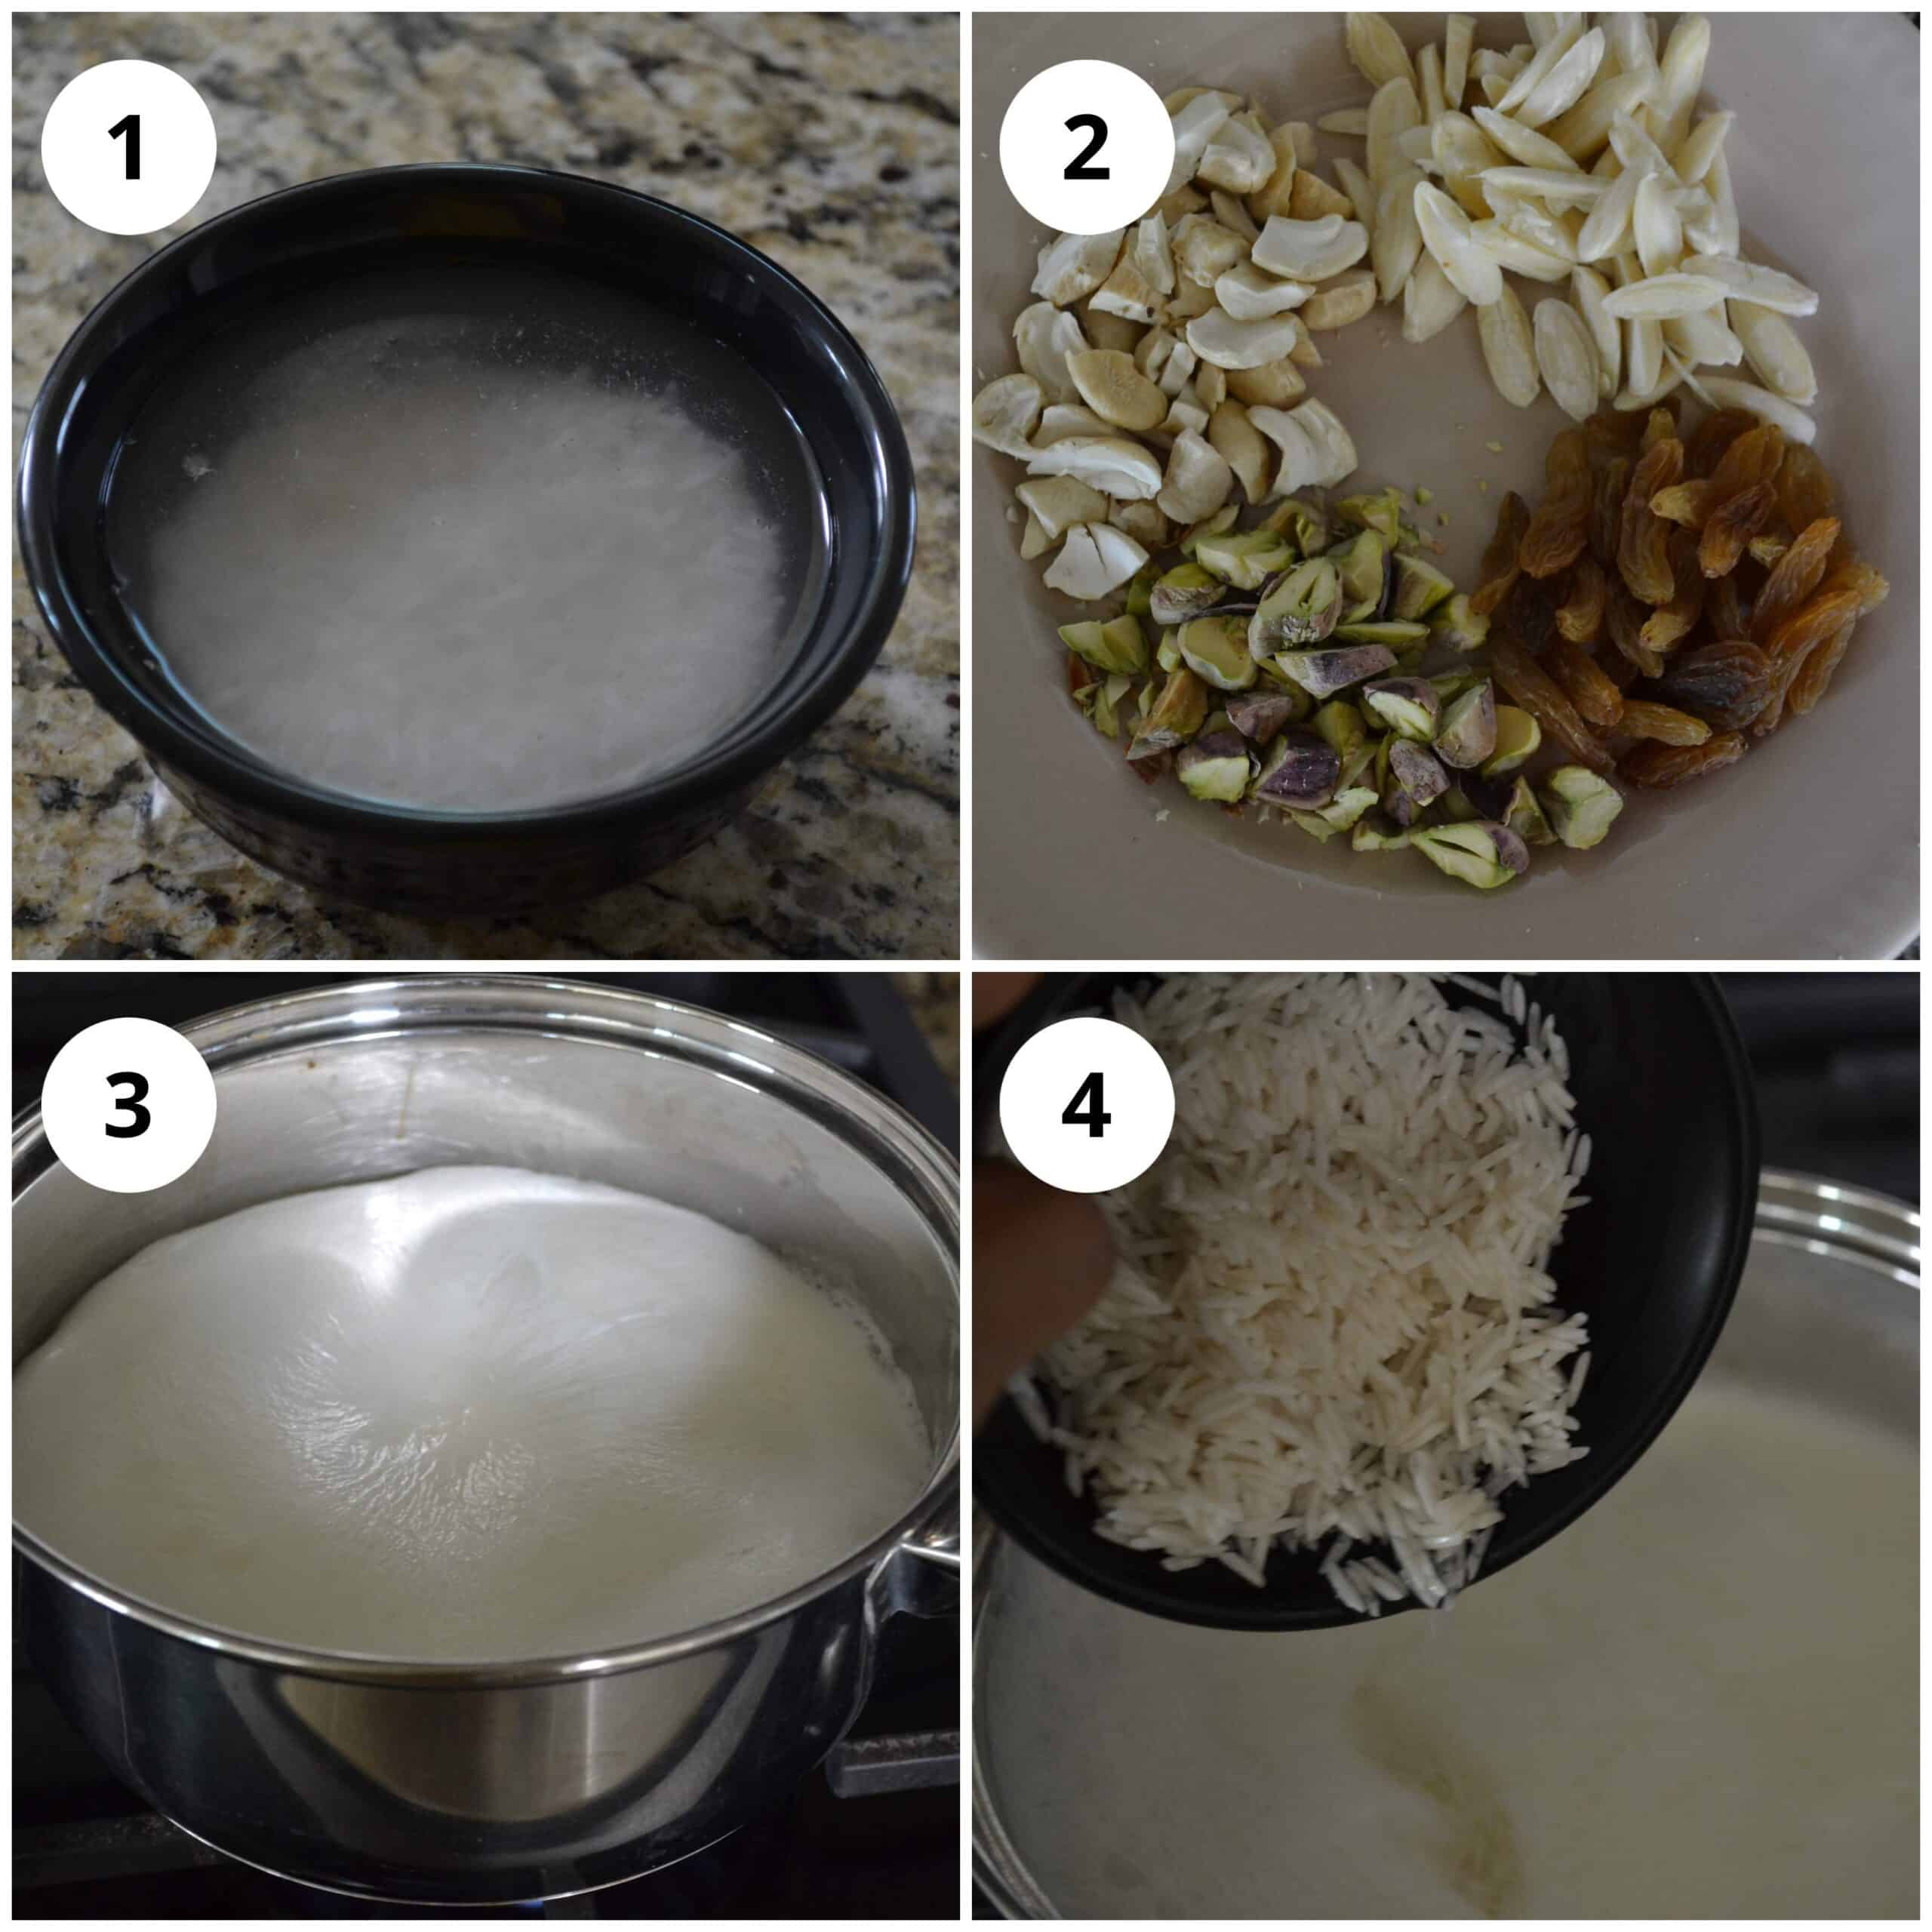 Photos showing soaking the rice, chopping the nuts an boiling the milk and adding rice